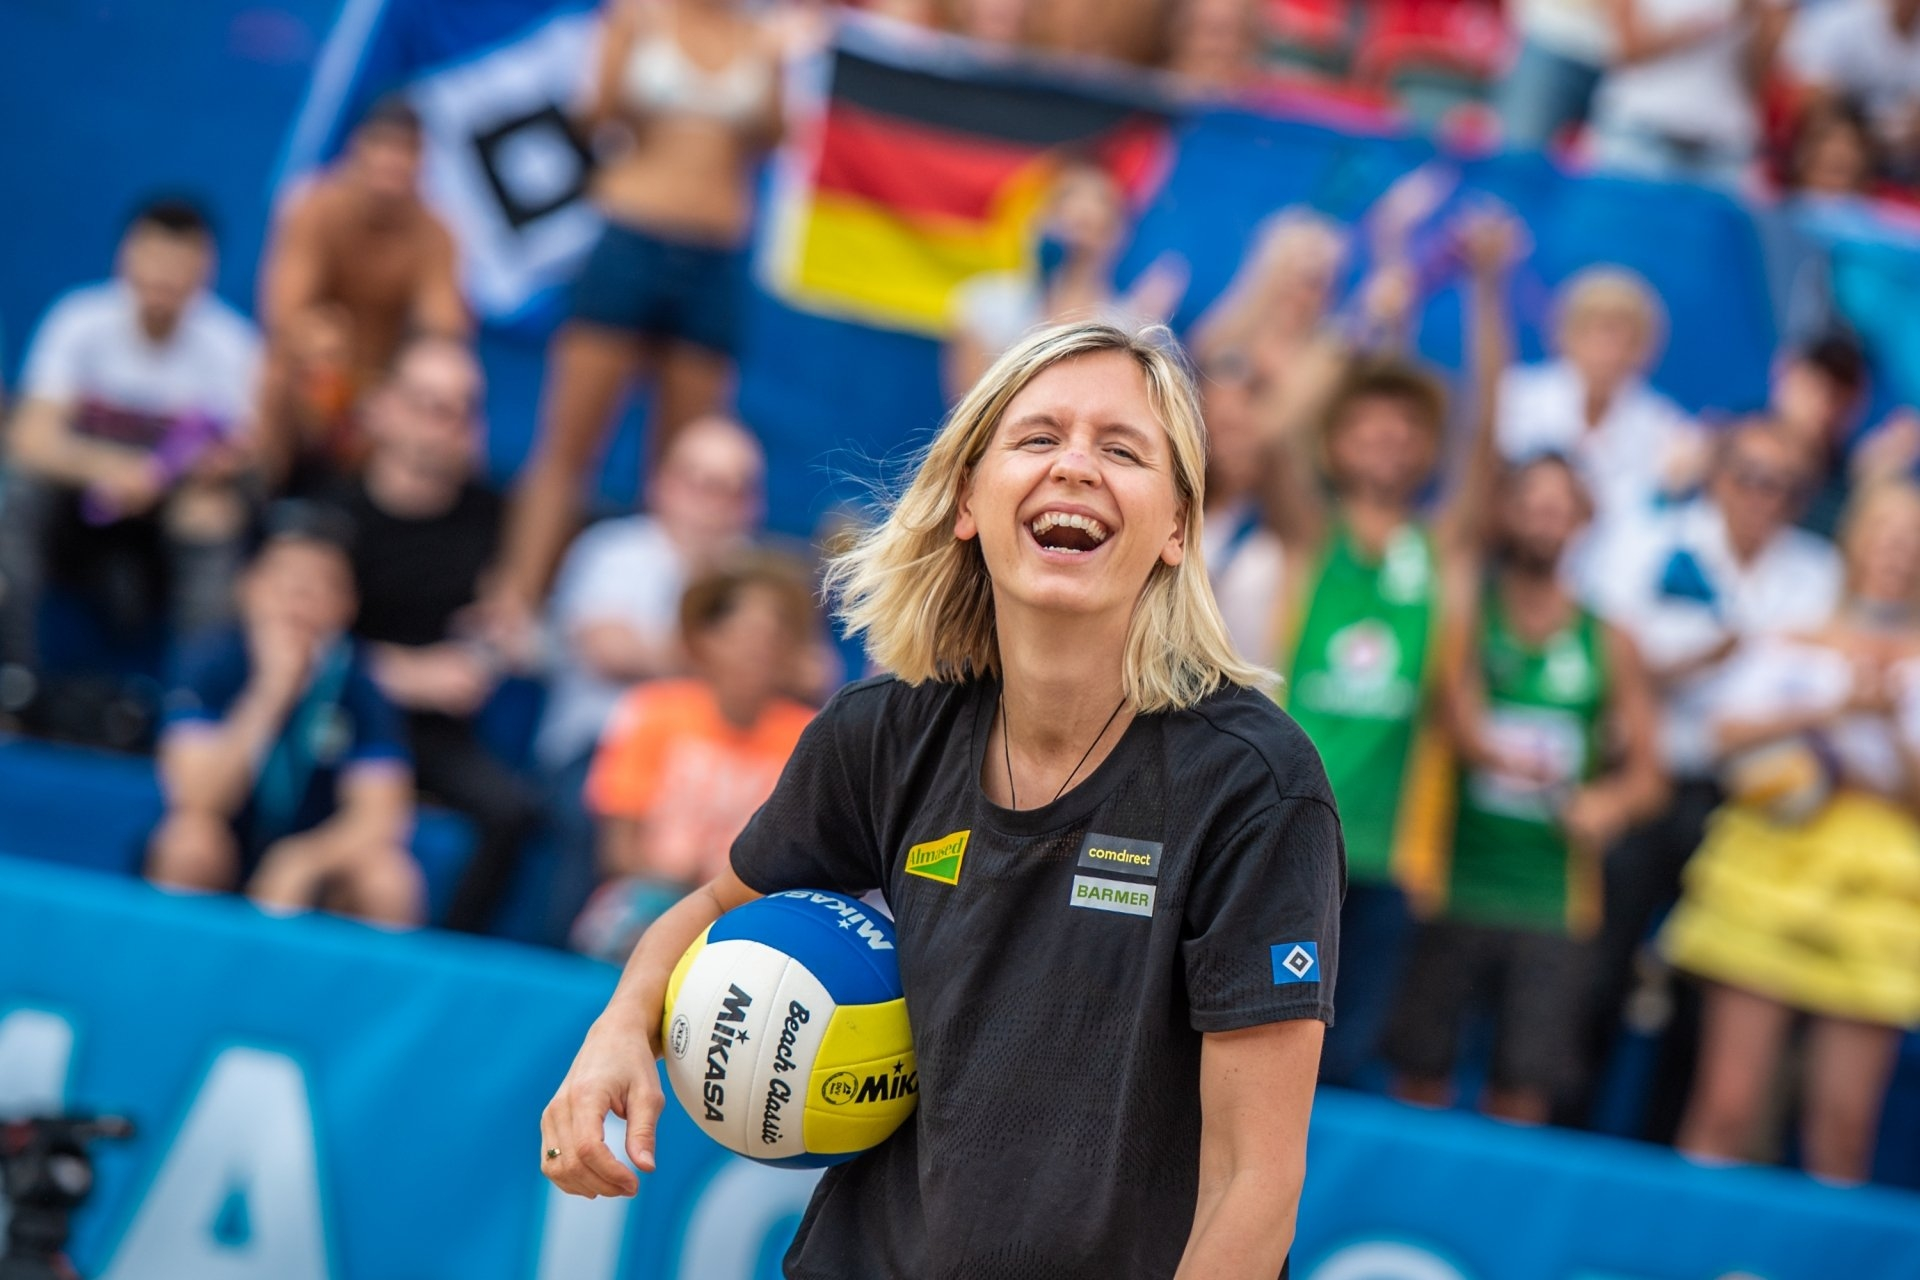 Olympic champion Laura Ludwig will return to the World Tour in 2019 with Maggie Kozuch